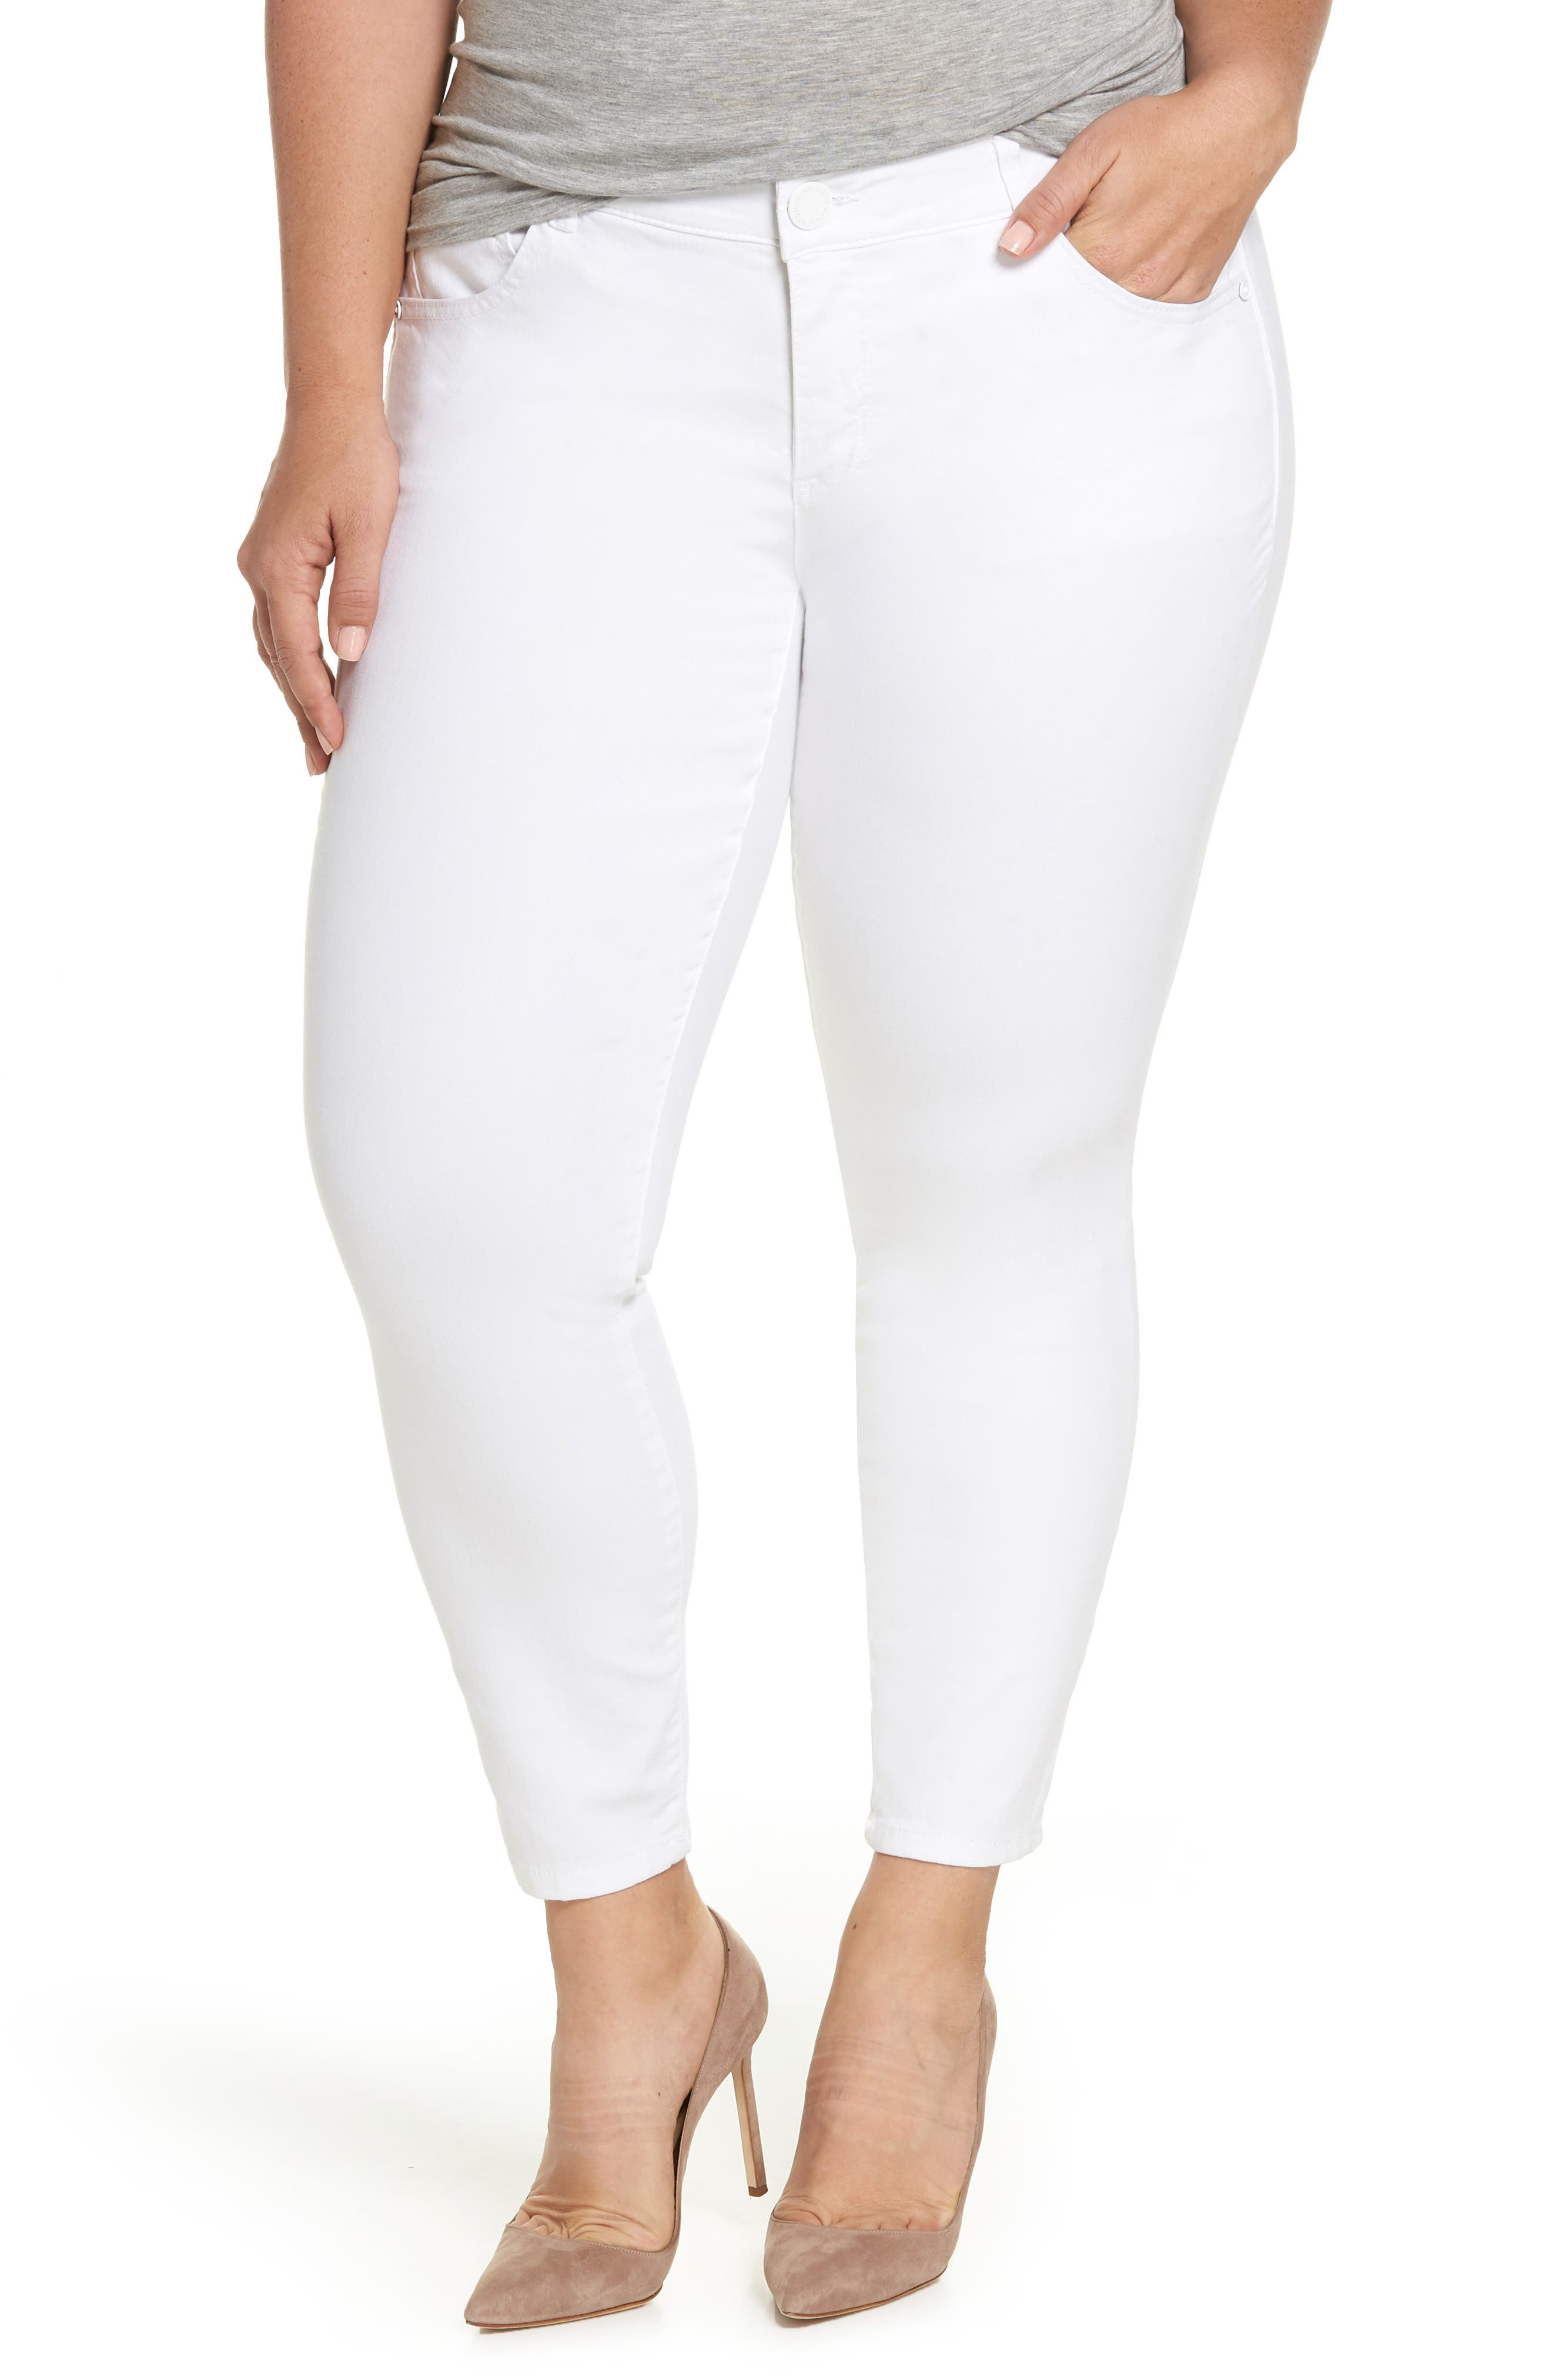 Ab-solution Ankle Skimmer Jeans,                         Main,                         color, 106